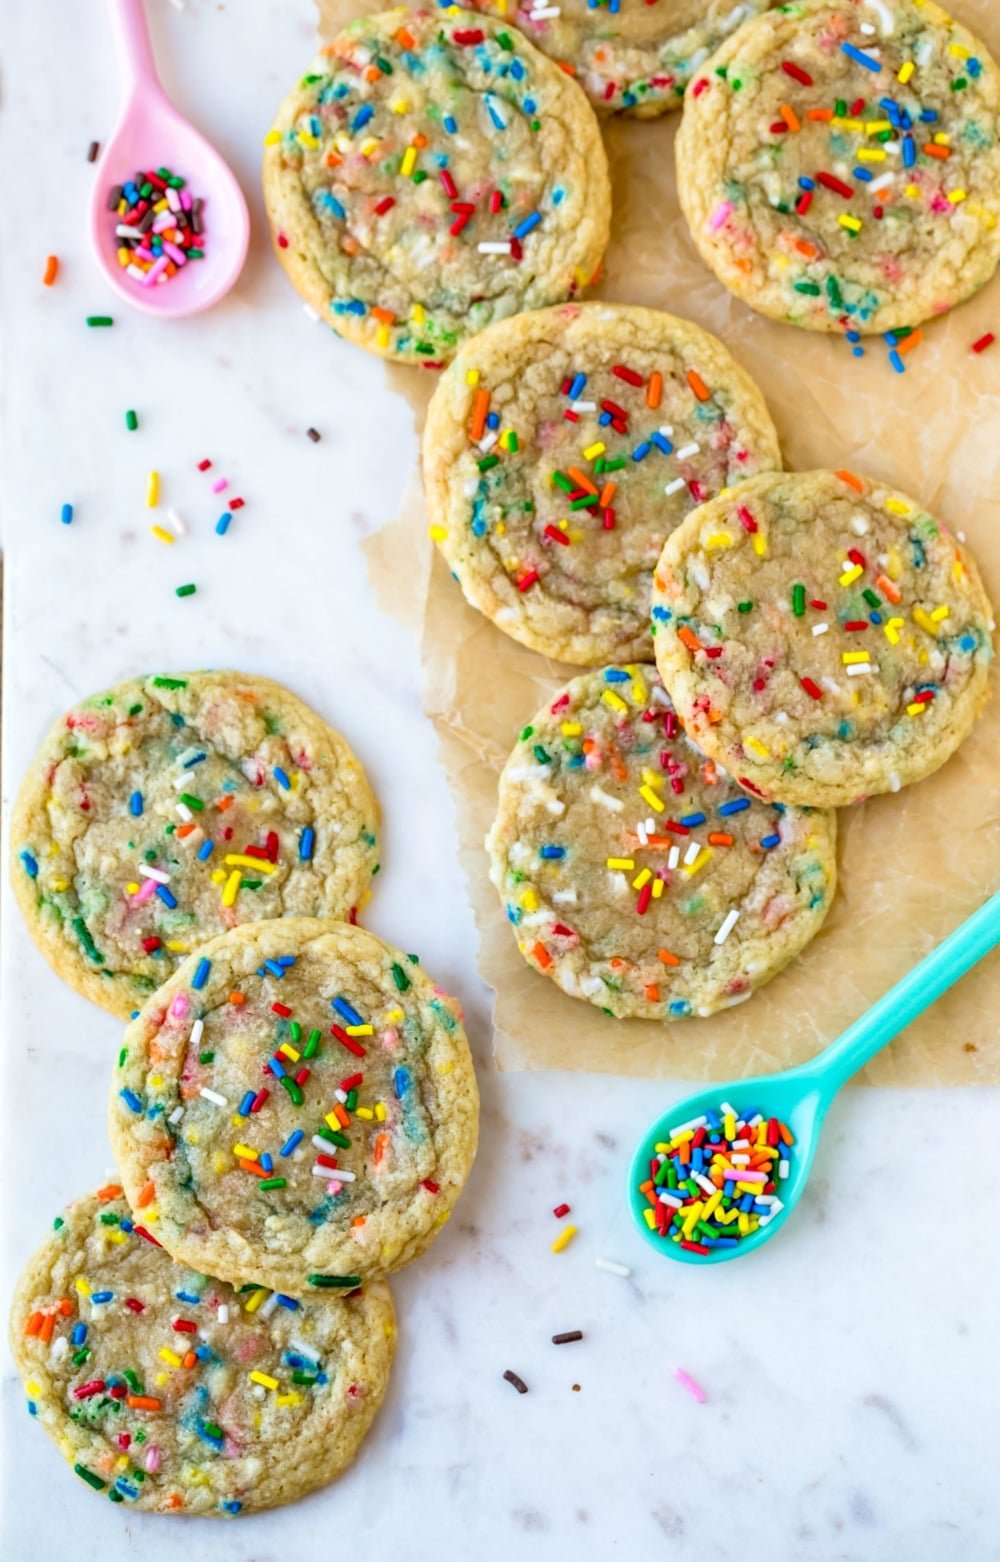 Homemade funfetti cookies next to spoons with sprinkles